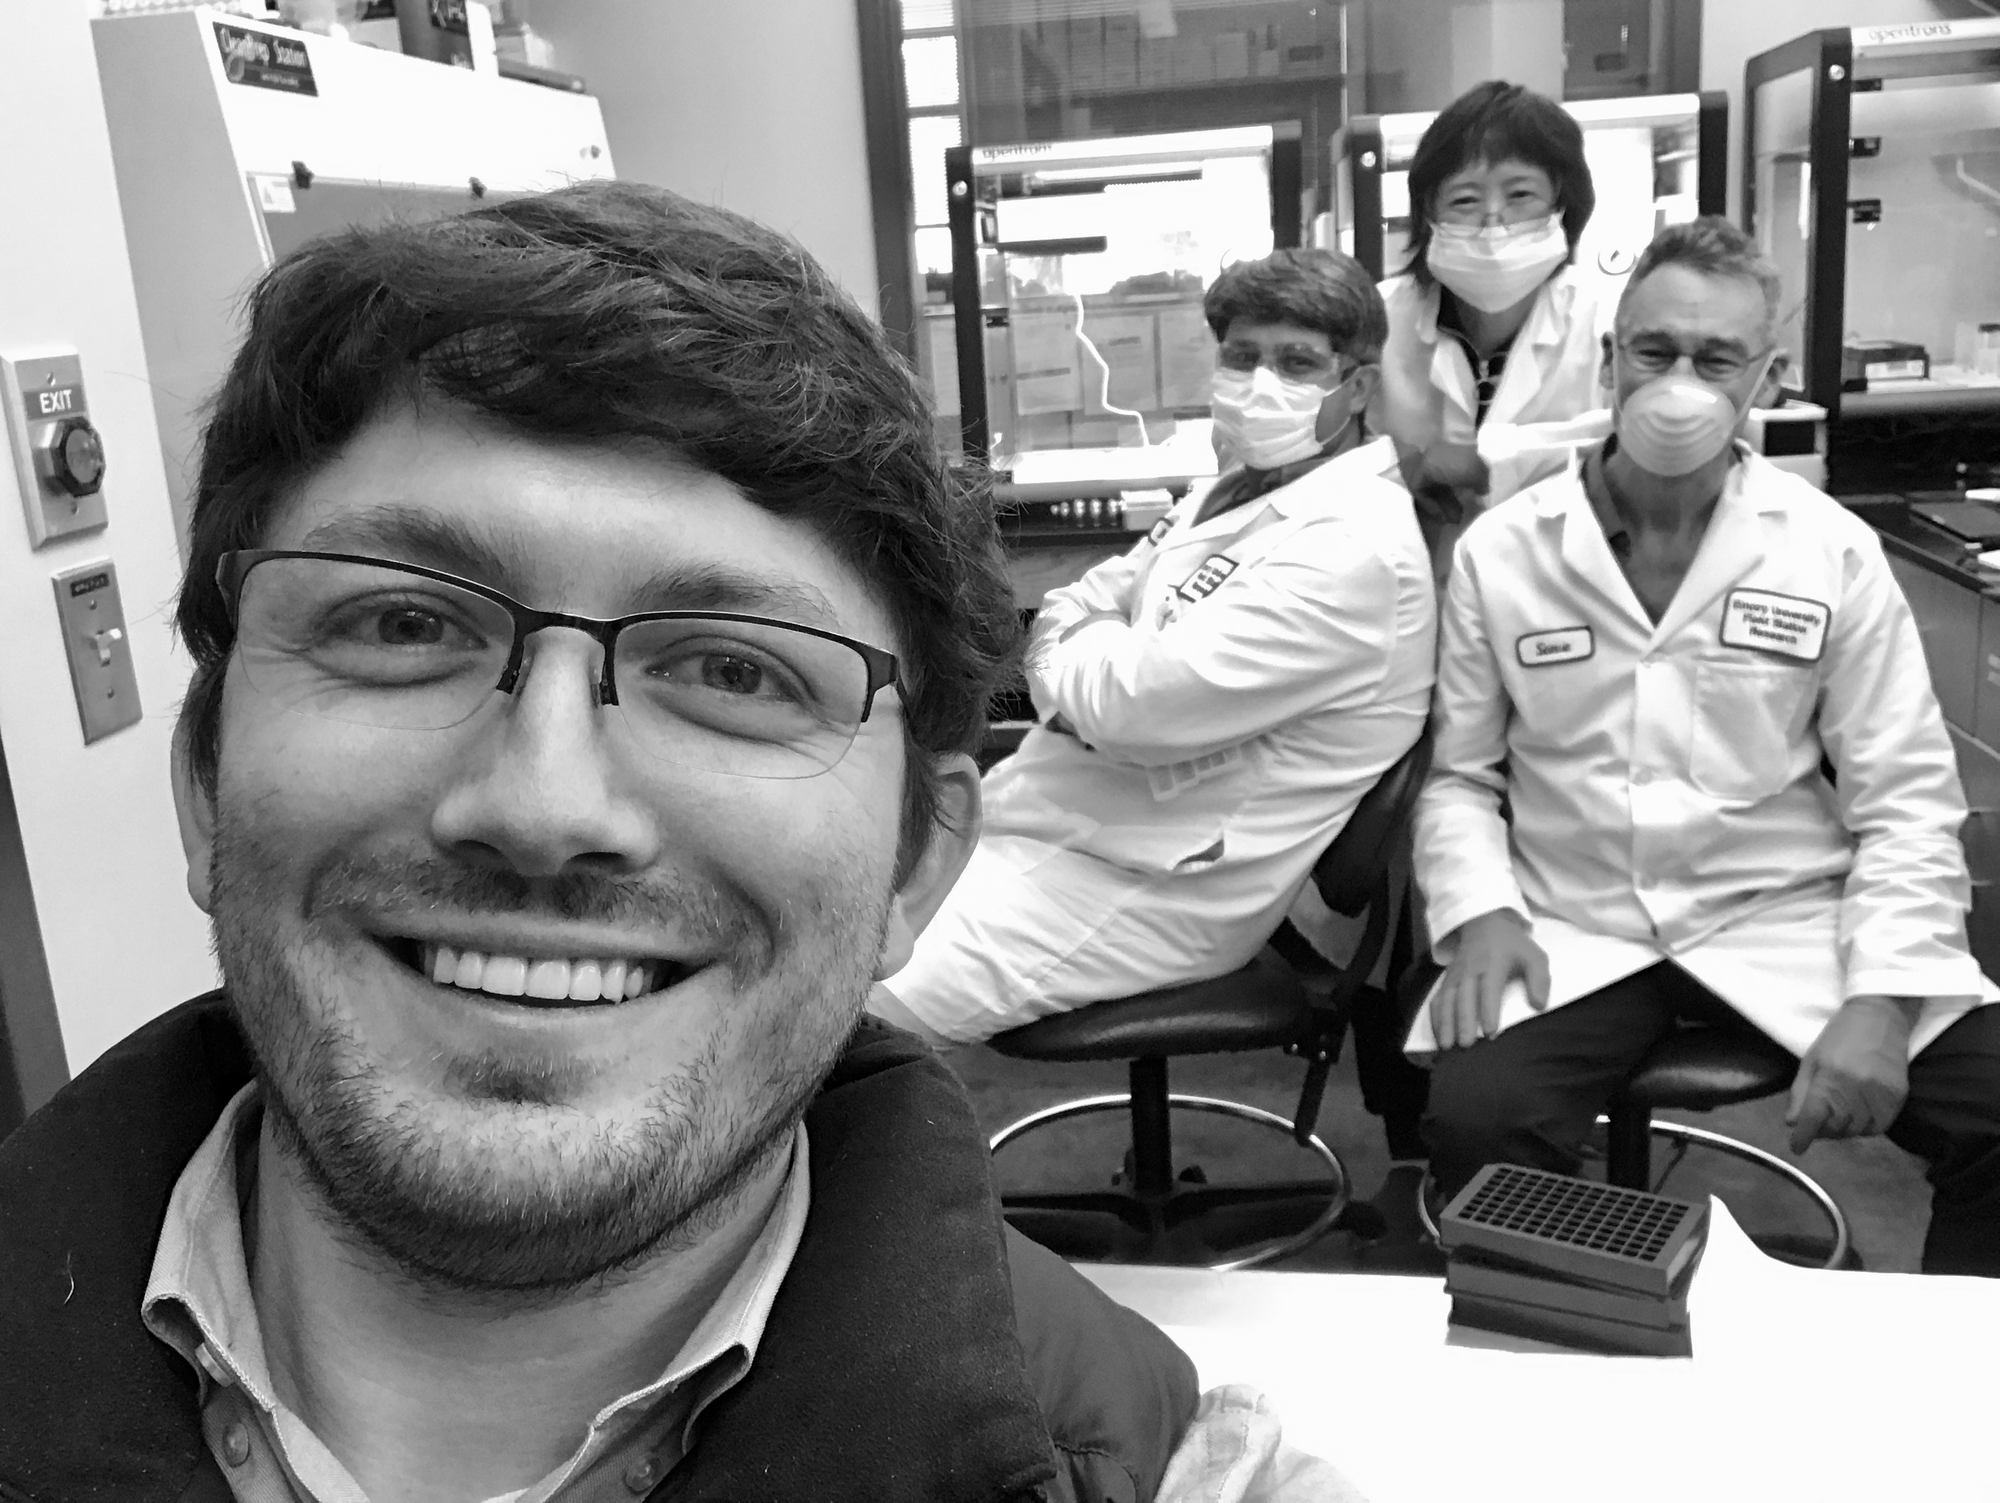 Adam Ericsen (front) in his lab with his 3 OT-2 and lab members Nathan Gullicksrud, Steven Plonk, and Yuhui Wu (l-r). CREDIT: Adam Ericsen